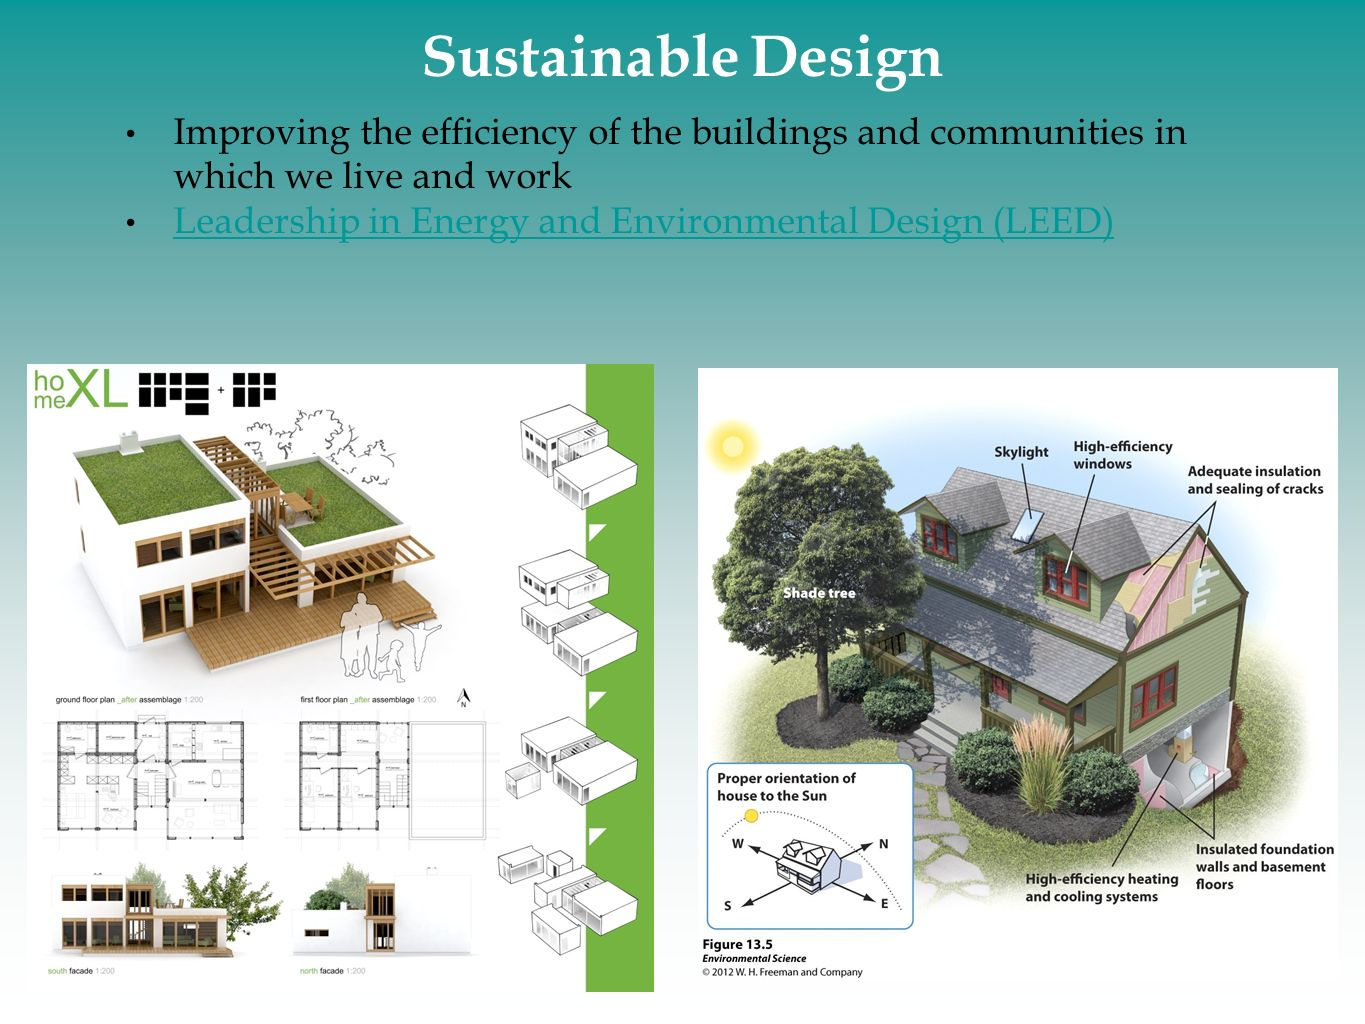 Sustainable Design Improving the efficiency of the buildings and communities in which we live and work.